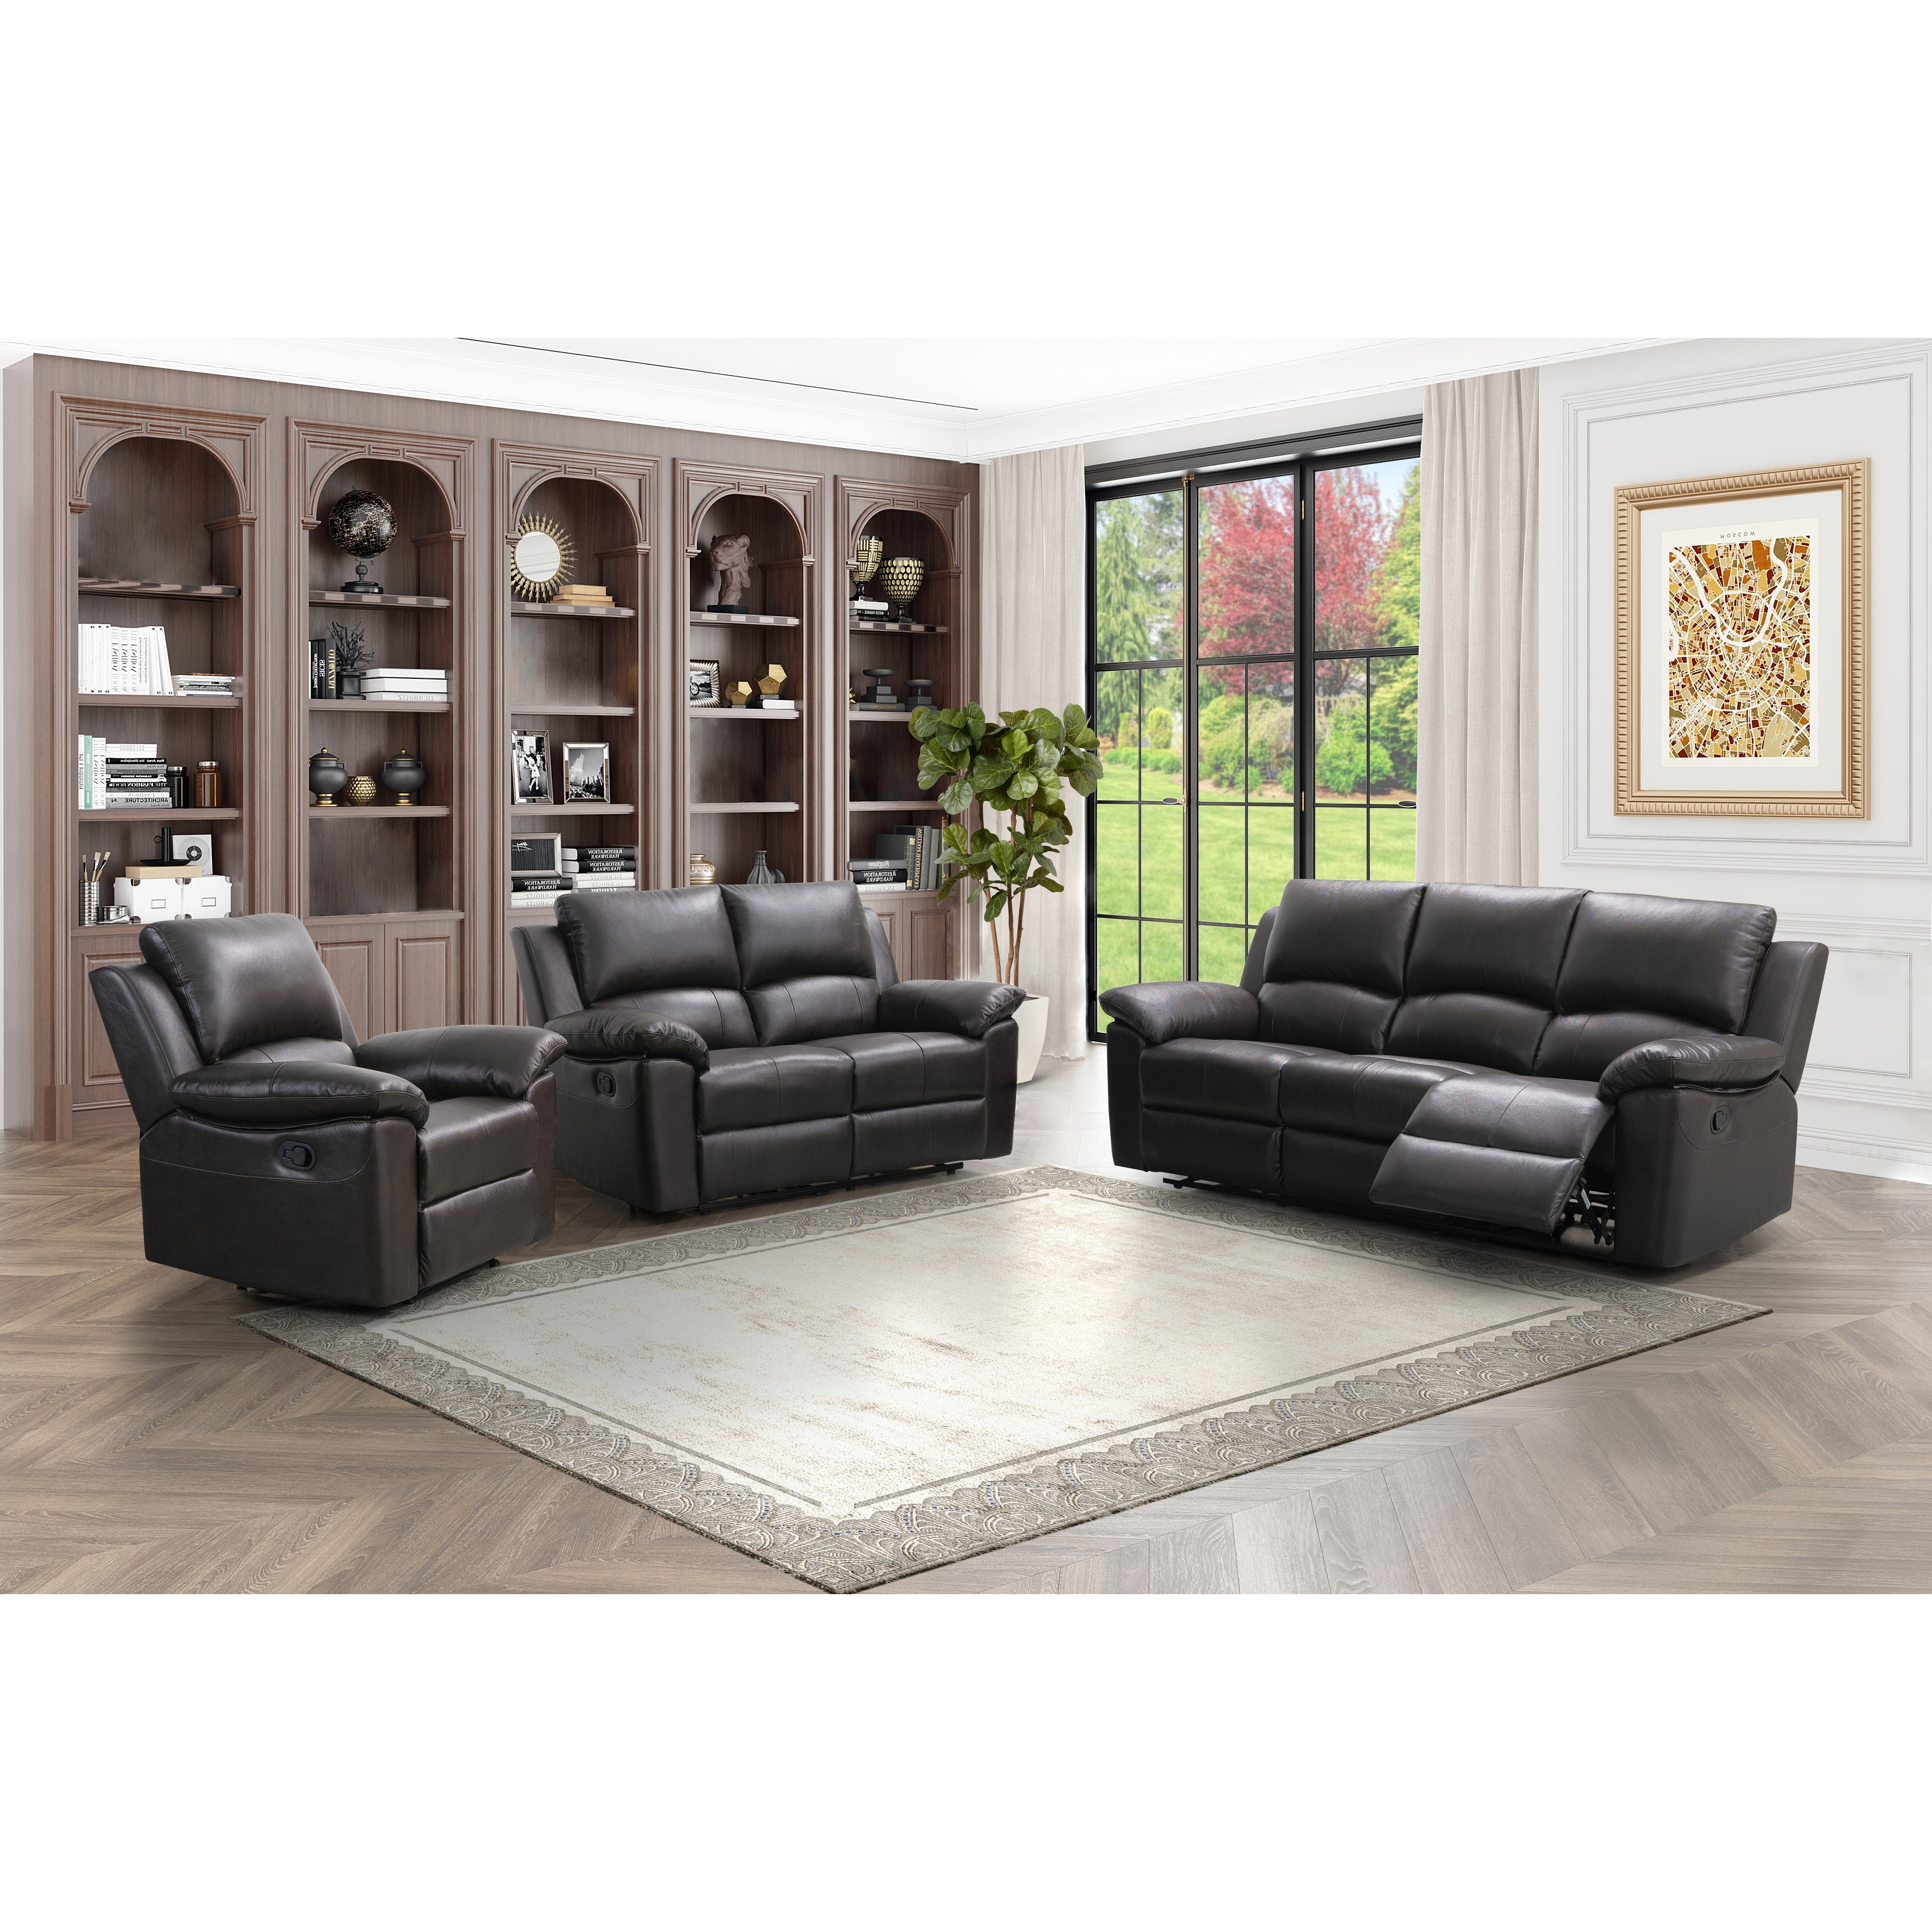 Abbyson Westwood Brown Leather 3 Piece Living Room Reclining Set Overstock 9557890